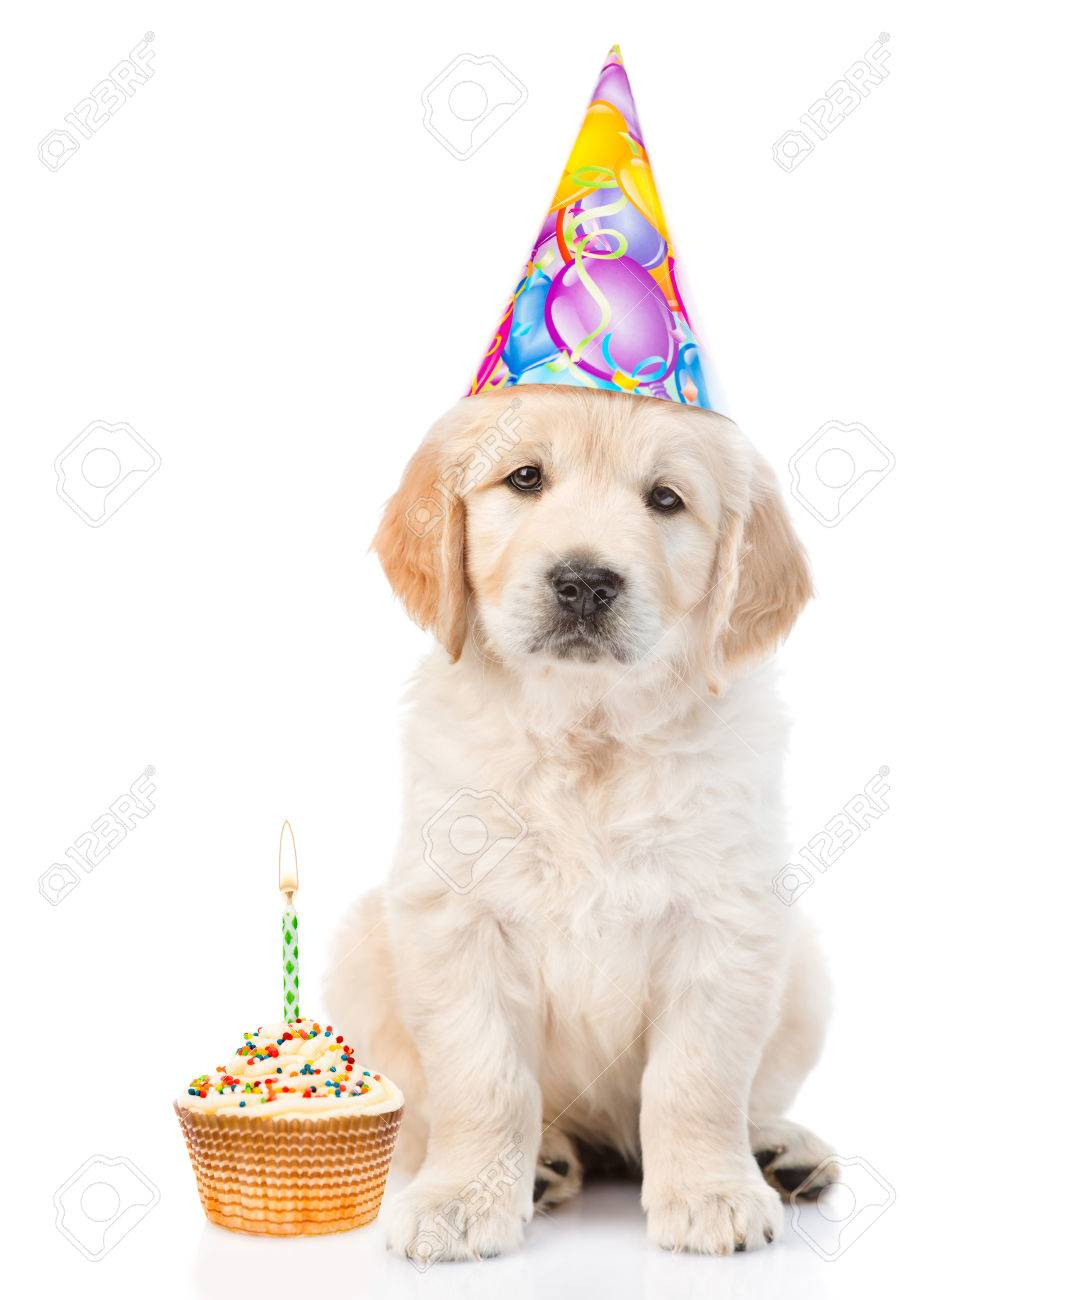 Golden Retriever Puppy In Birthday Hat With Cake Looking At Camera